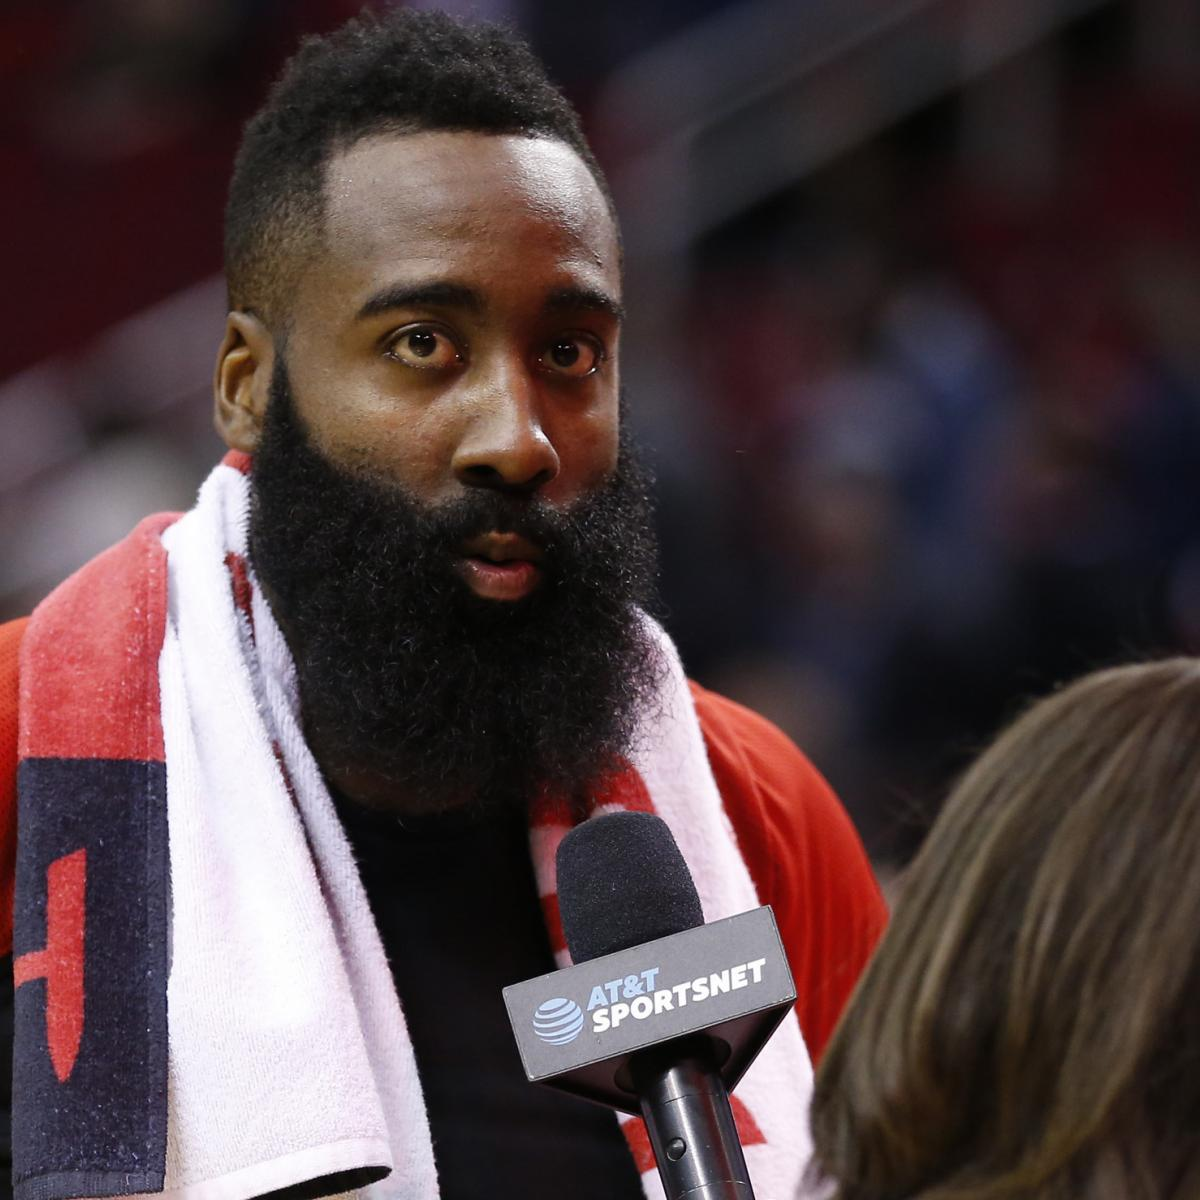 Watch Full Highlights Of Rockets' James Harden's 57-Point